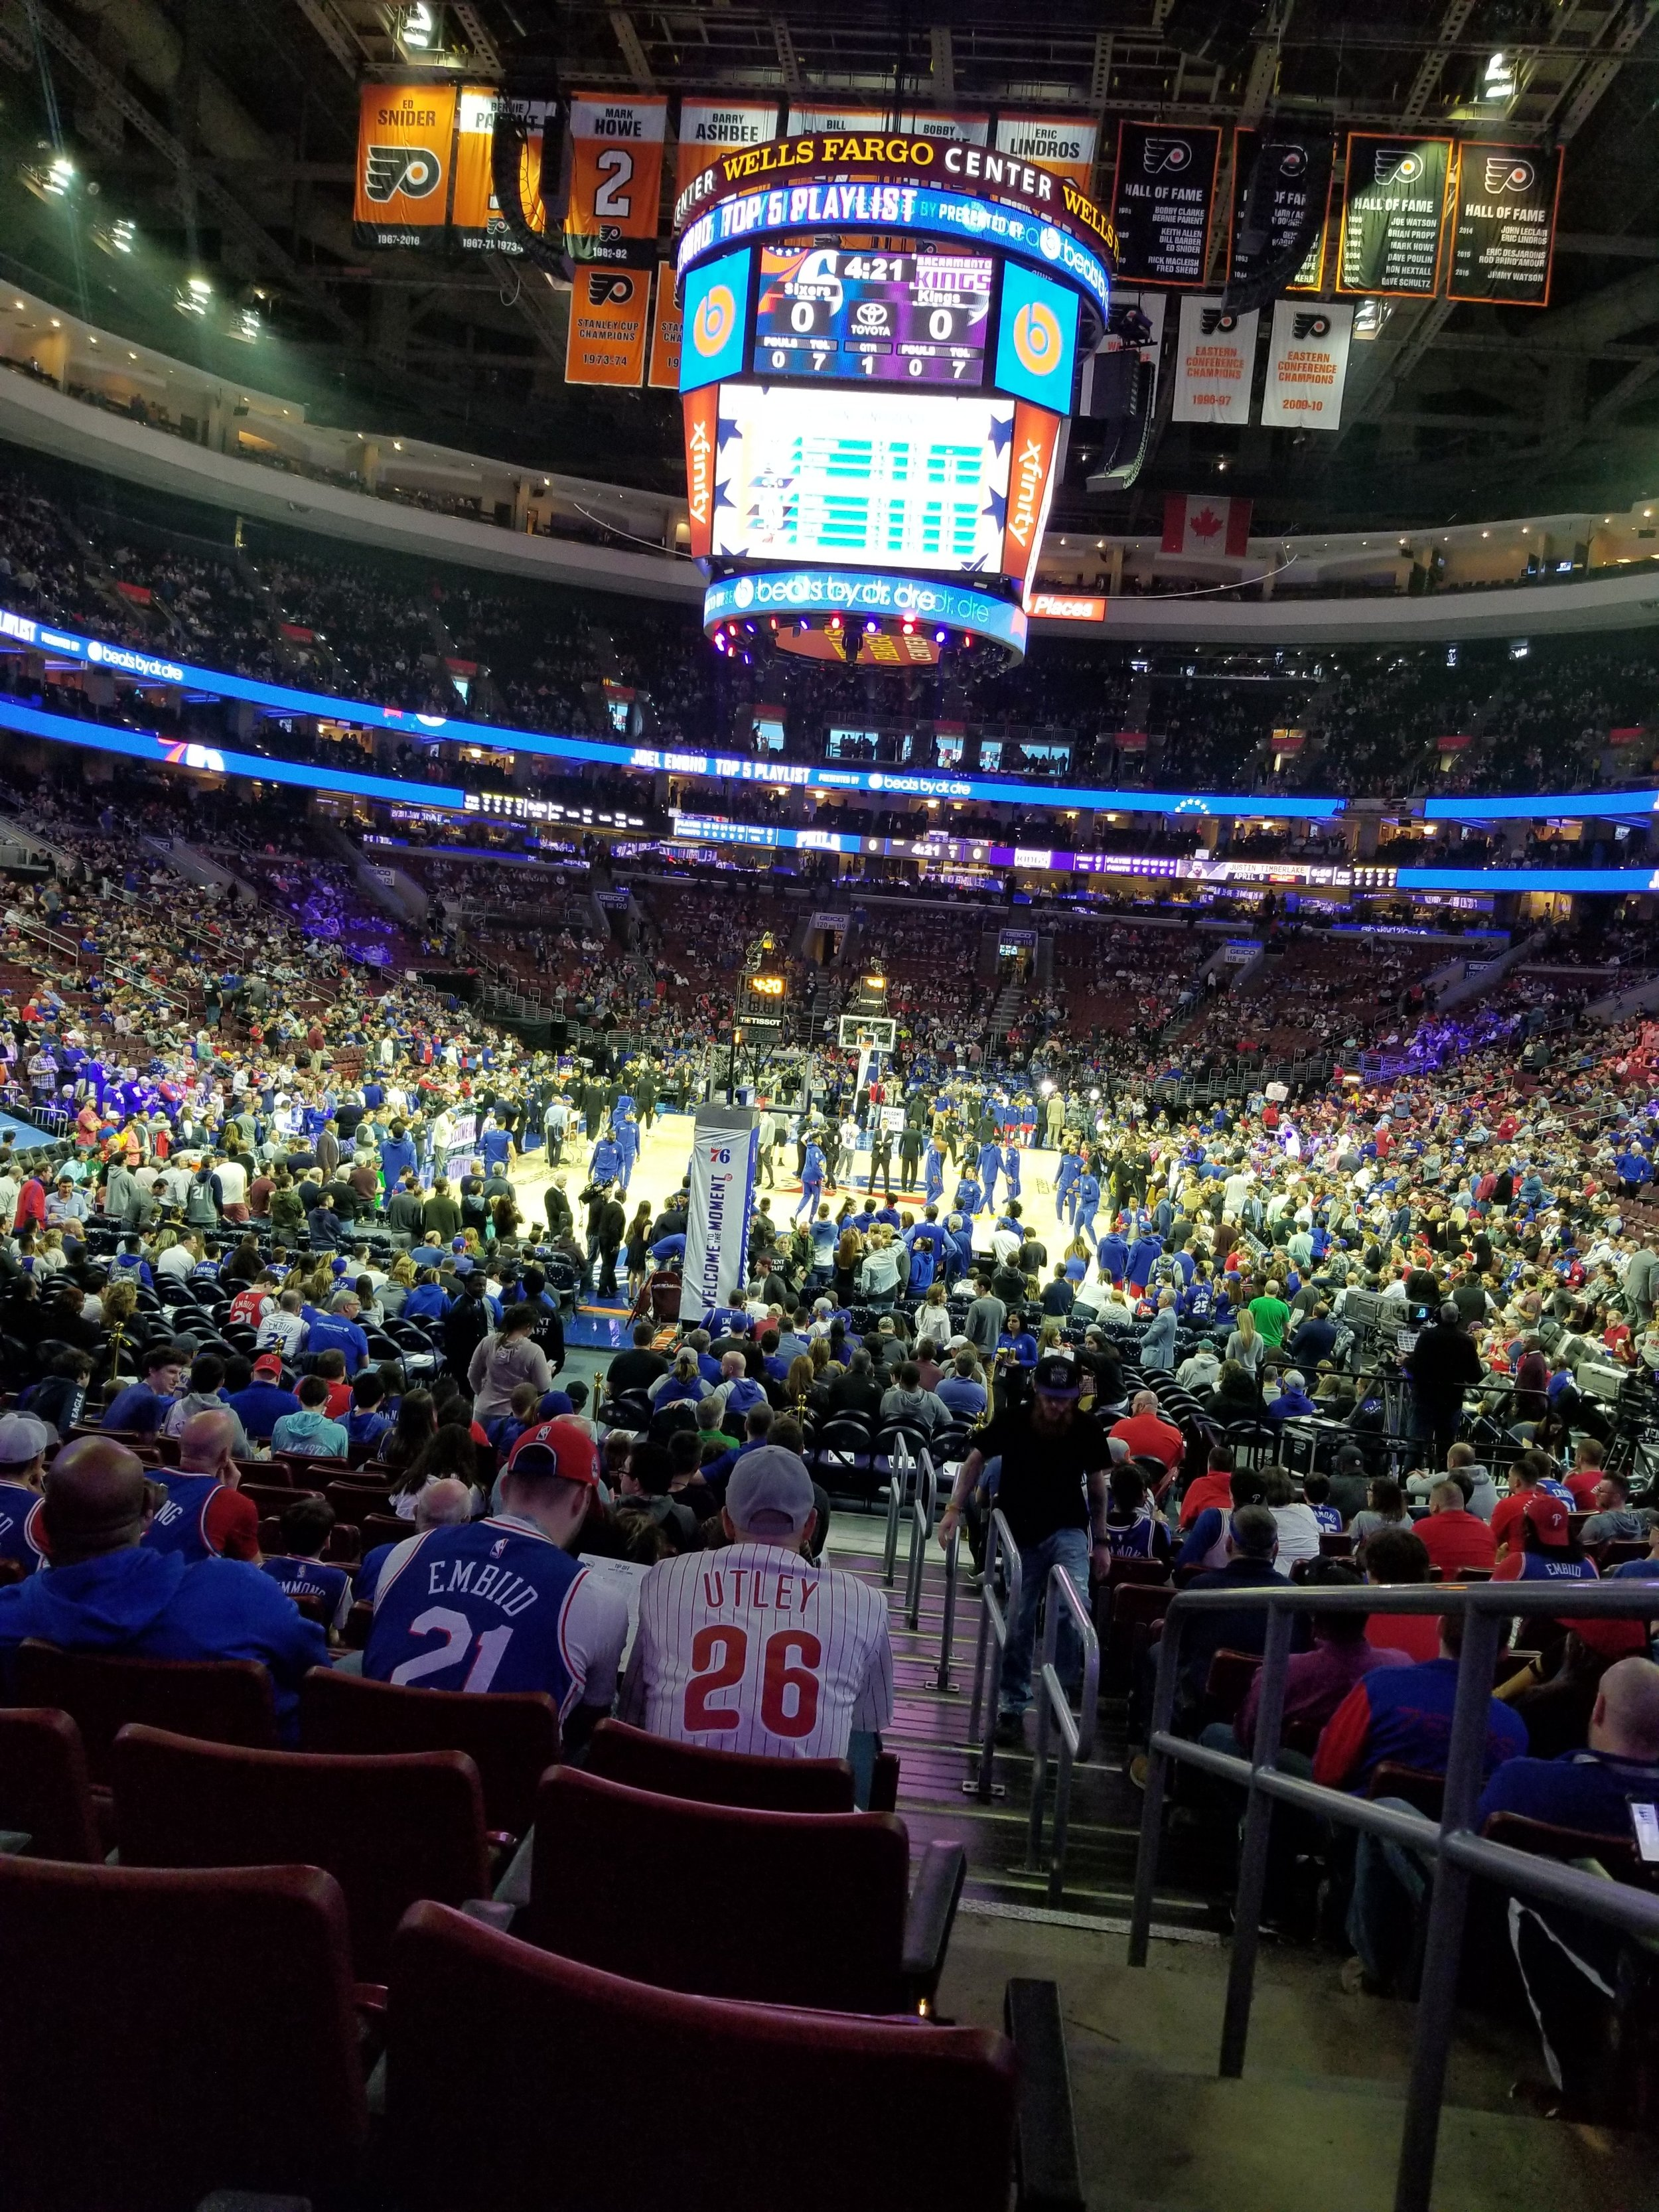 I'm not a basketball fan, but since we didn't have anything planned we decided to go to the 76ers home game against the Kings. These great seats were only $125 each.